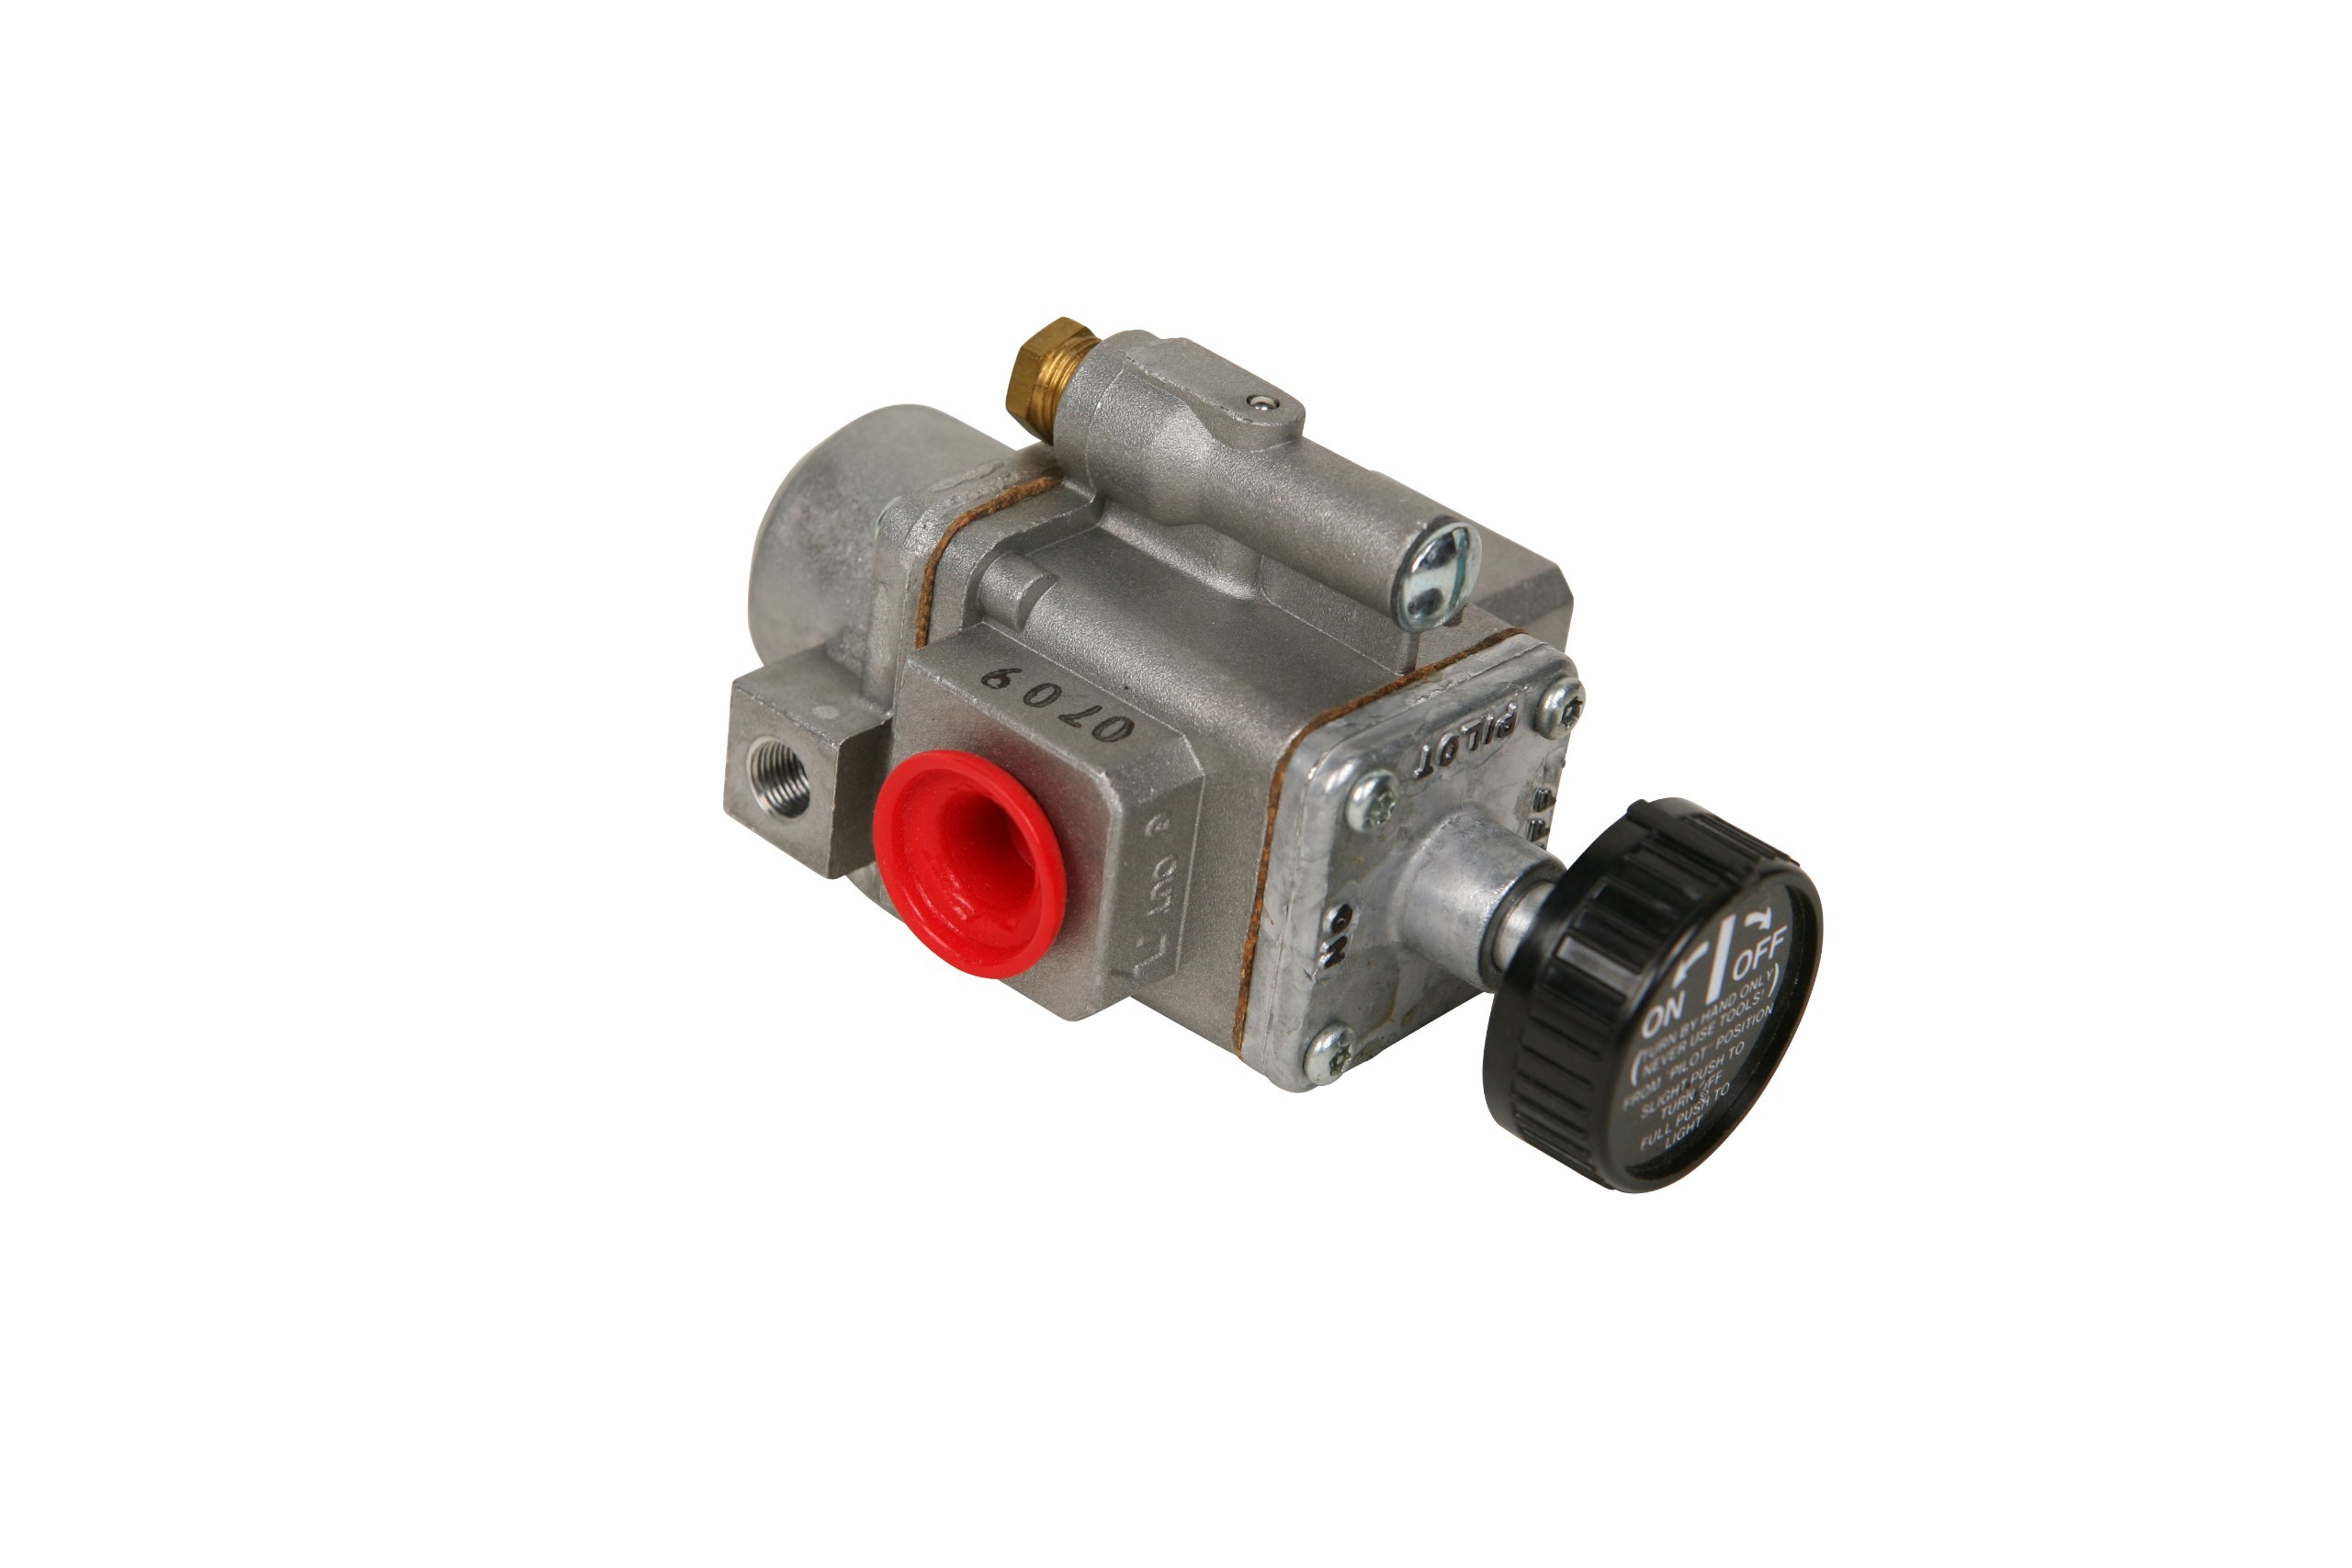 Anets P8904-84, Gas Safety Valve Replacement Part by ANETS (Image #1)